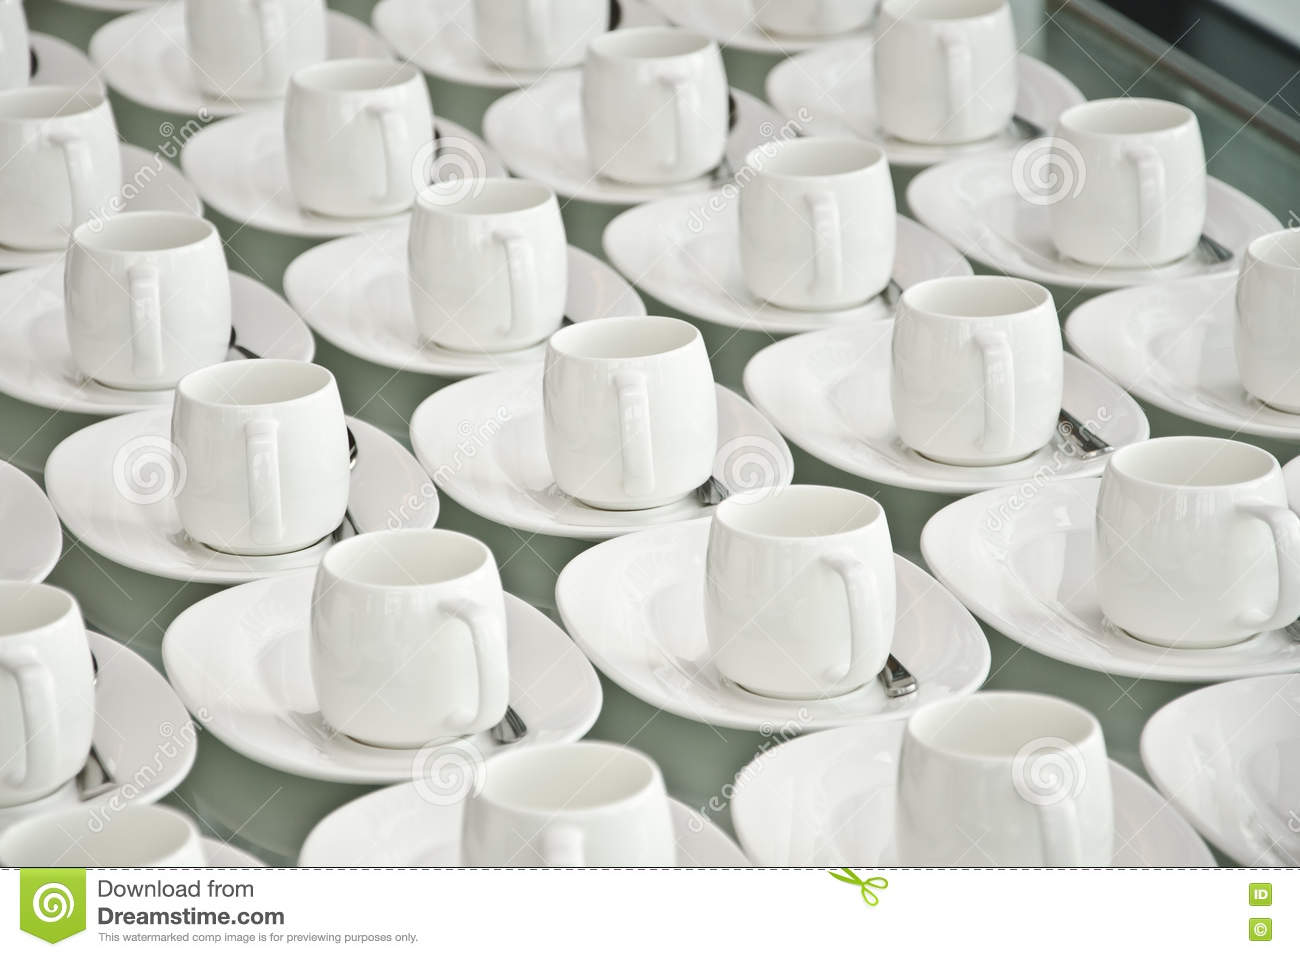 Group of coffee cups.empty cups for coffee.Many rows of white cup for service tea or coffee in breakfast at buffet event.white cup